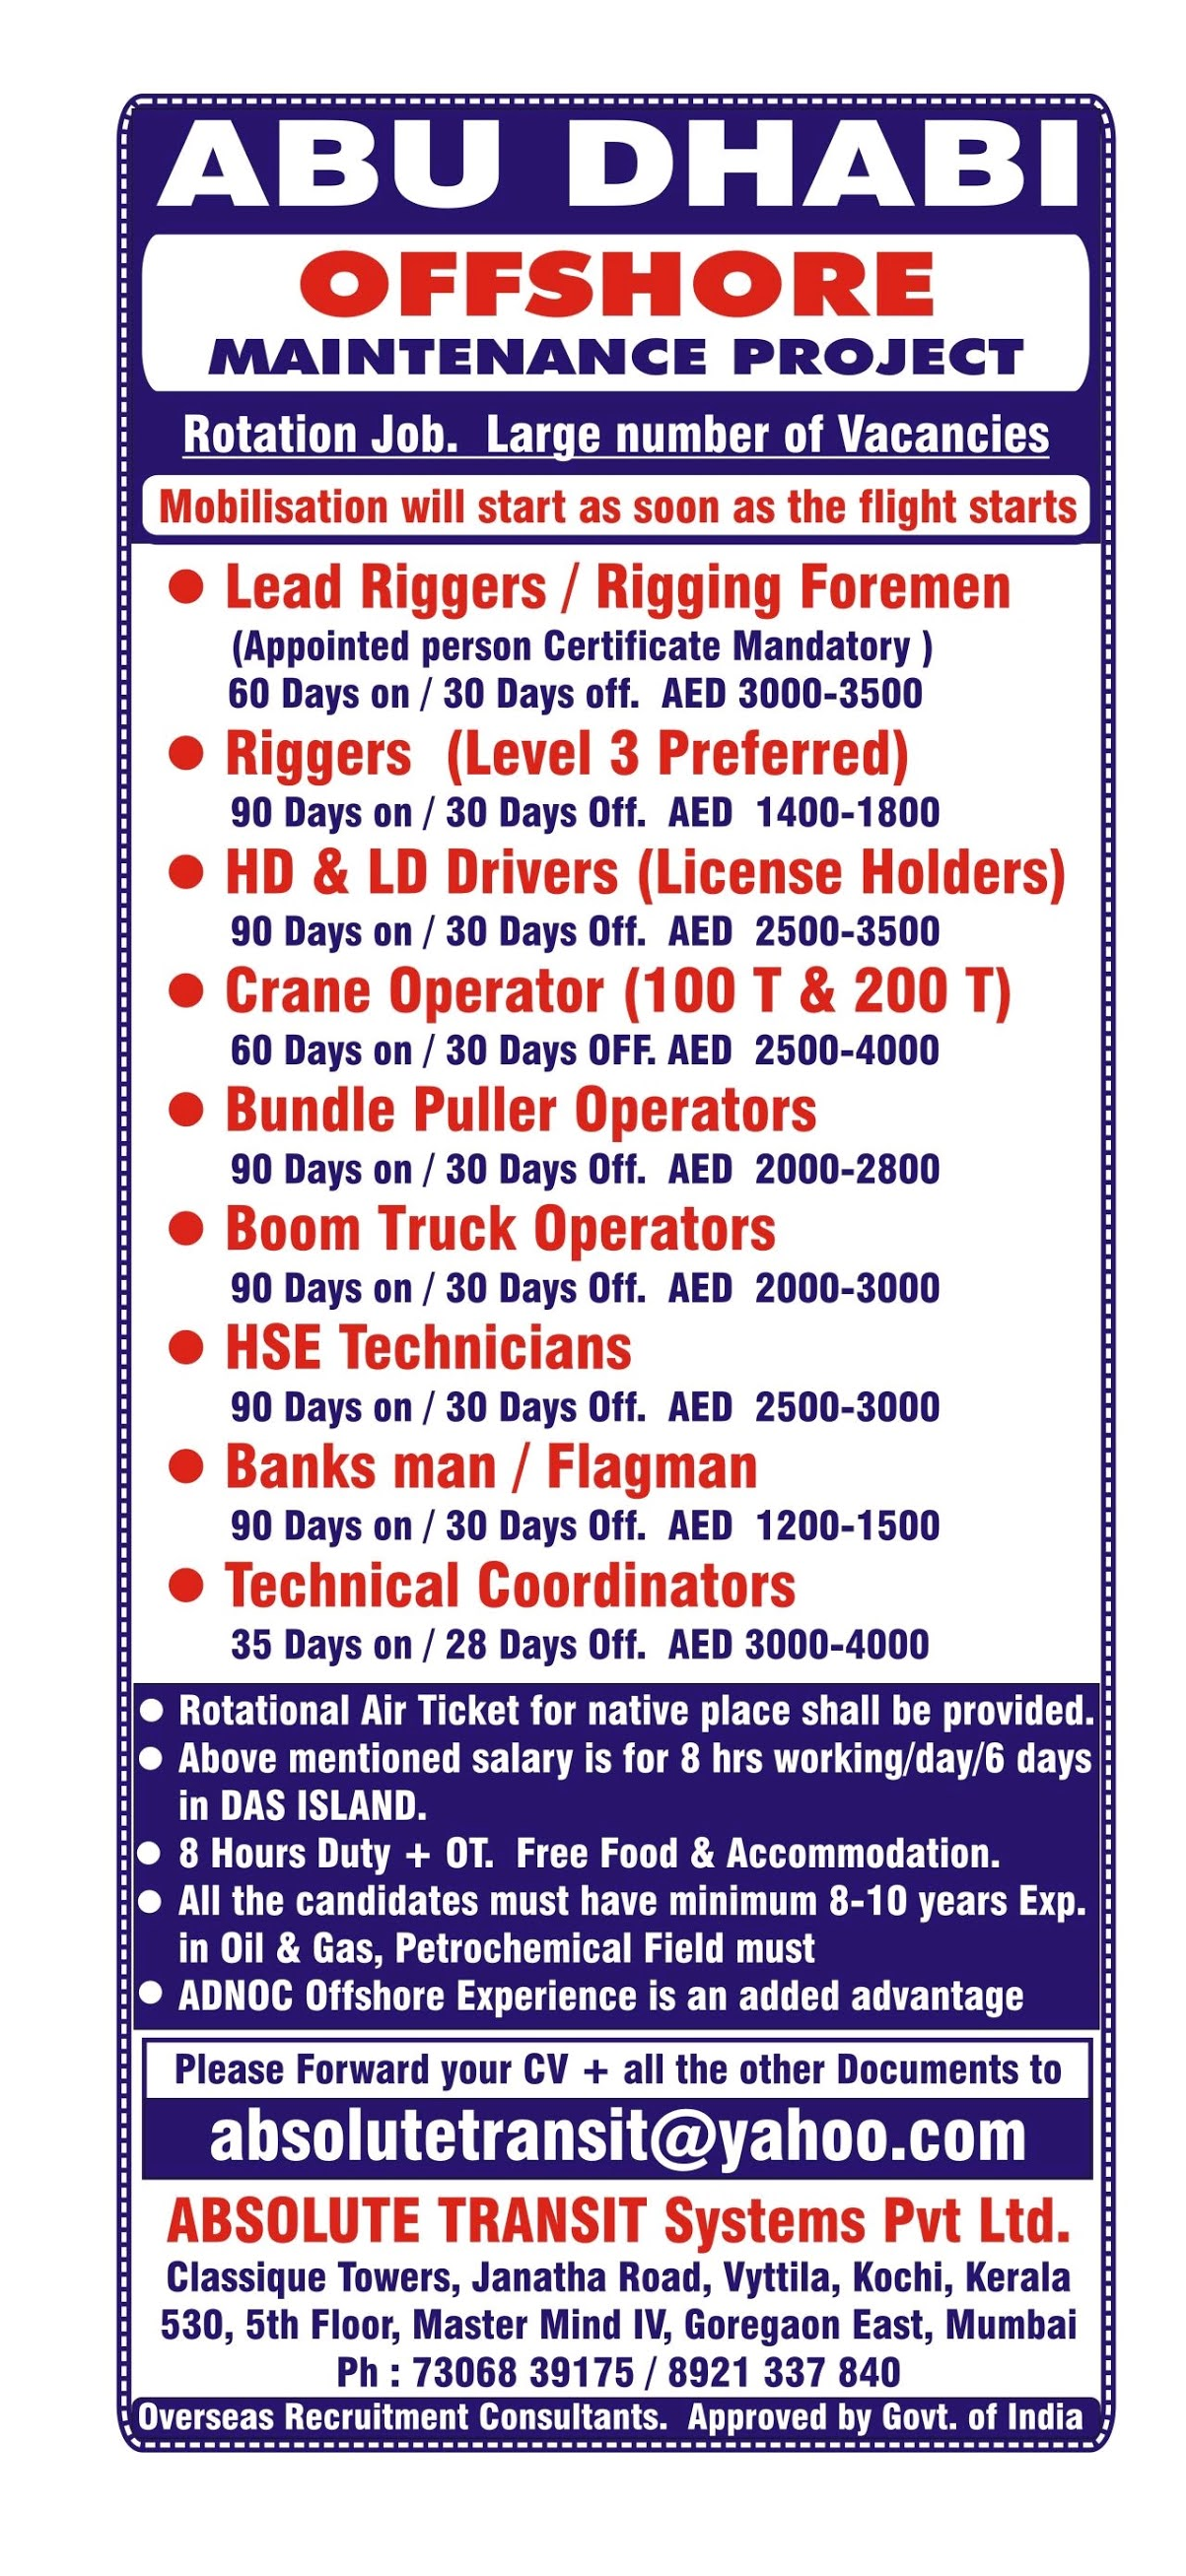 ADNOC Project Recruitment Rigger, Foreman, Drivers, Crane Operators  and More For Abu Dhabi Location